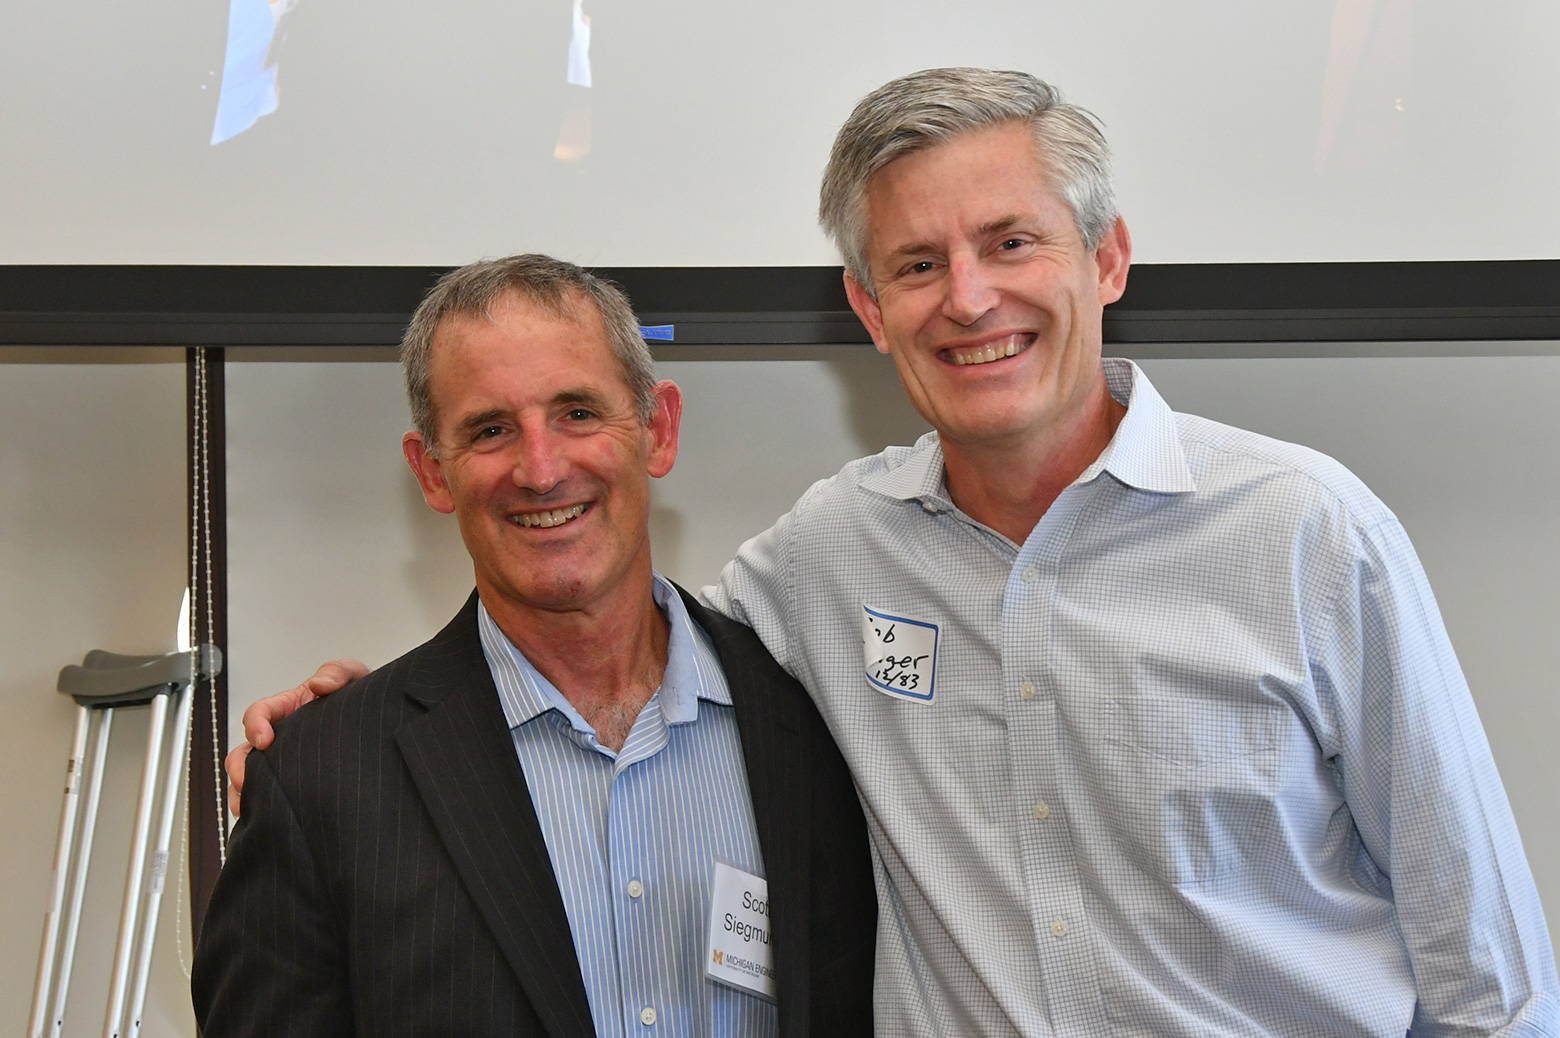 Image of Scott Siegmund and Bob Ranger.